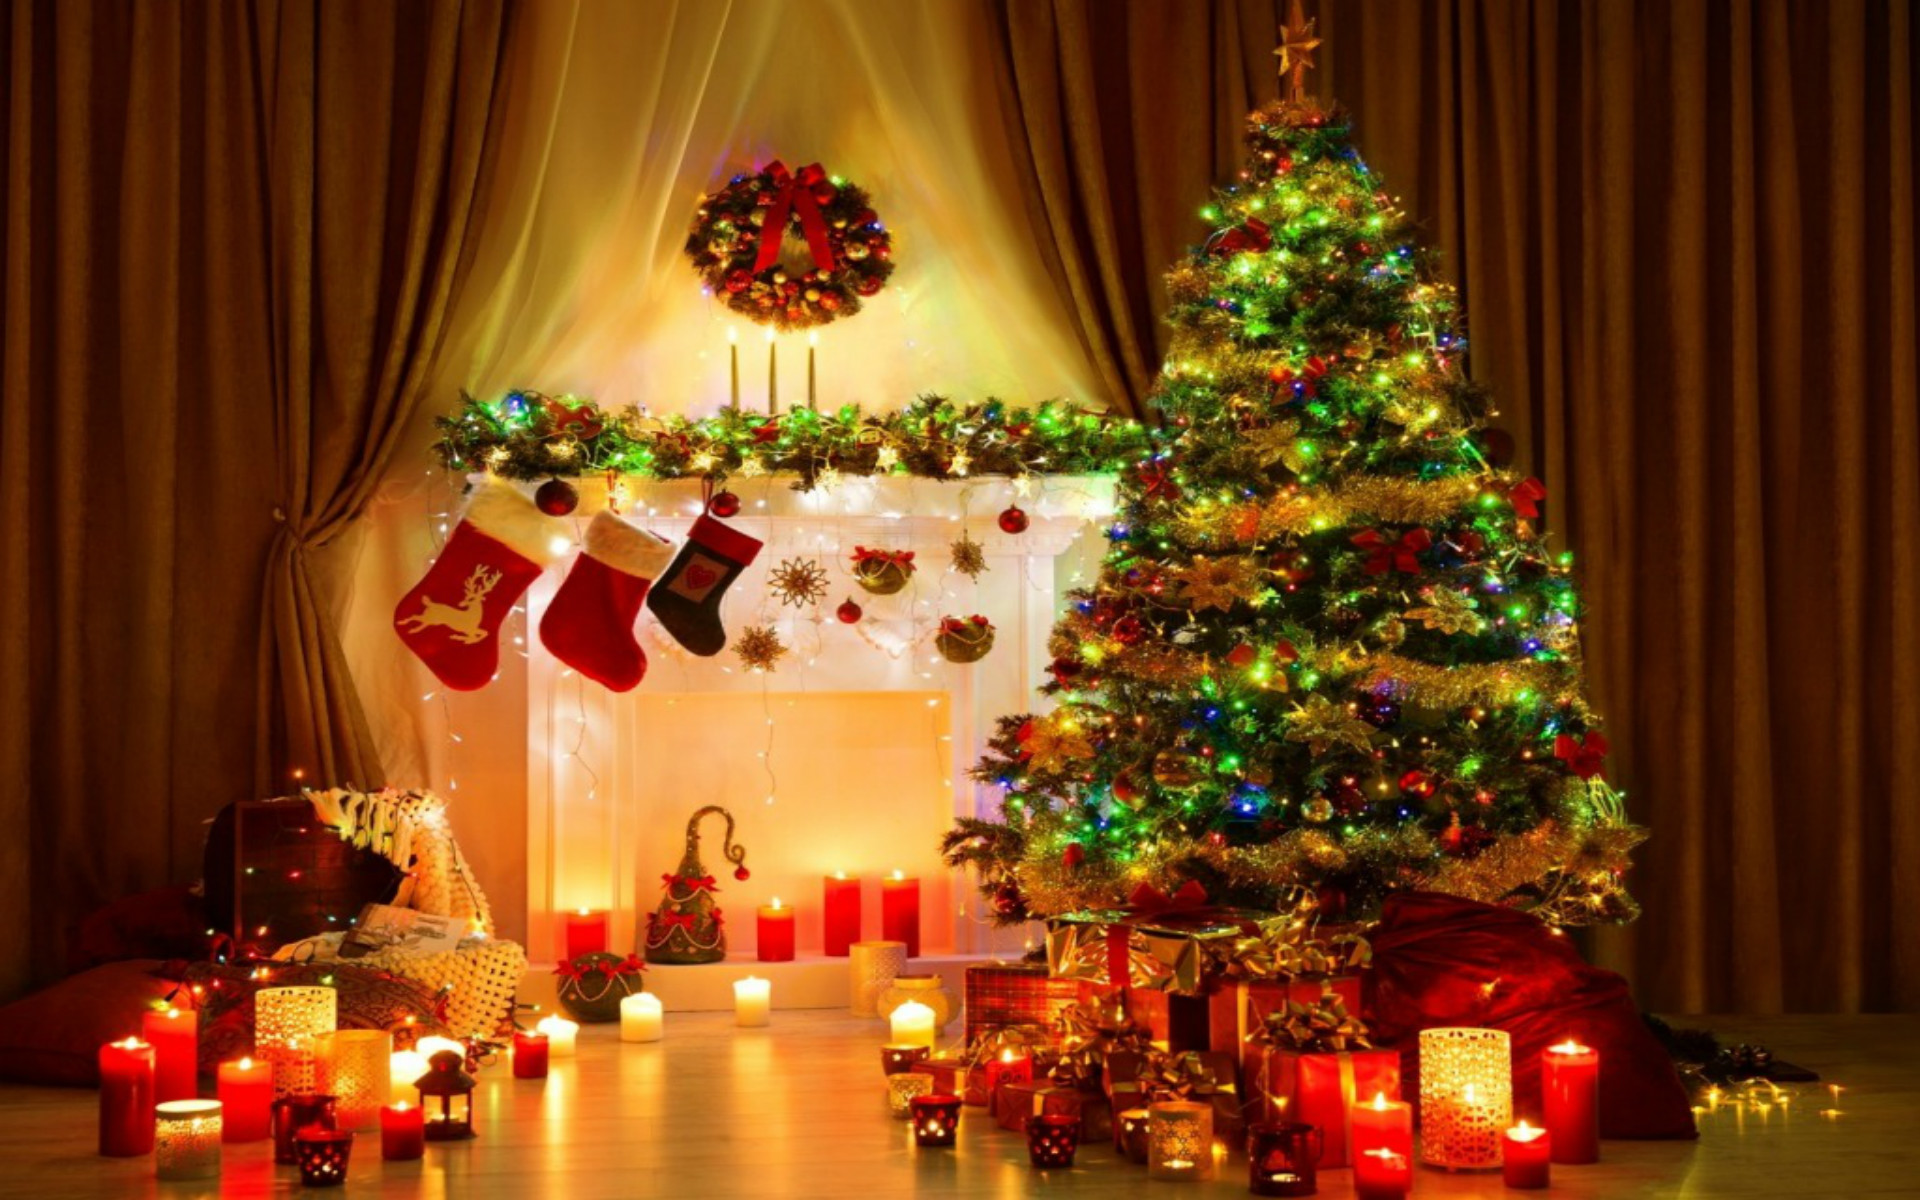 Christmas Tree Wallpaper Backgrounds 61 images 1920x1200